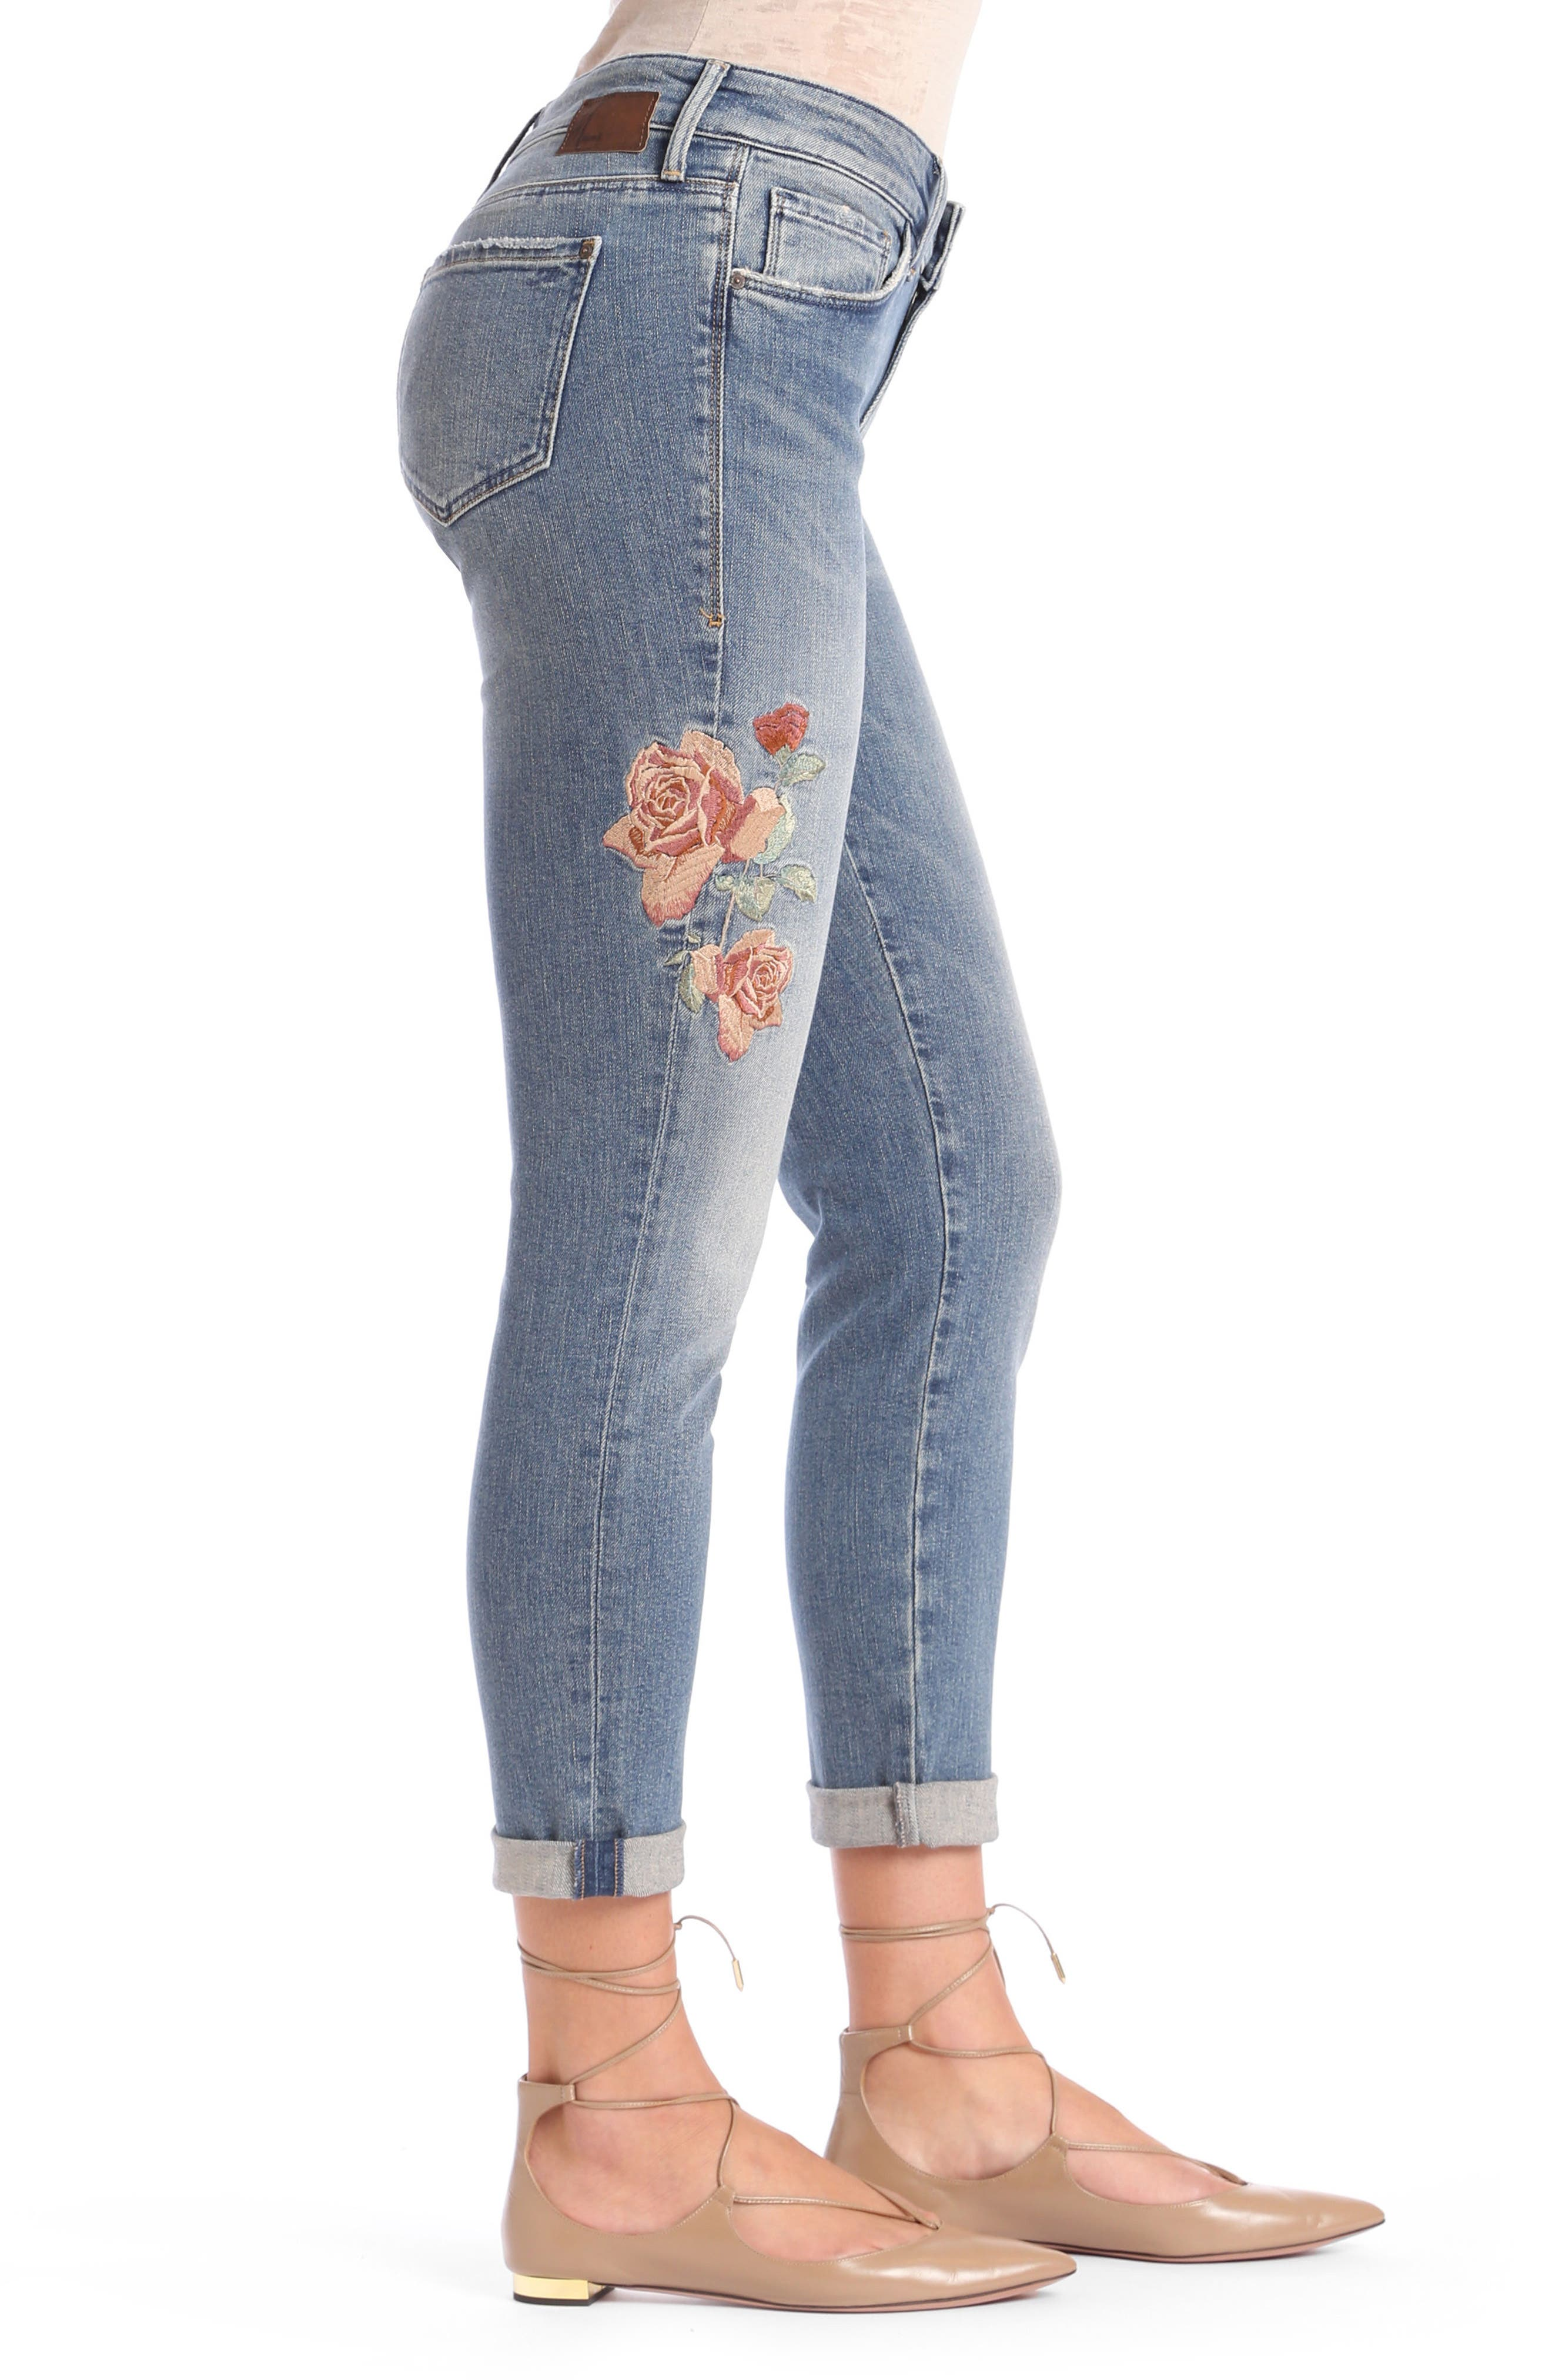 Ada Embroidered Boyfriend Jeans,                             Alternate thumbnail 3, color,                             Mid Rose Embroidery